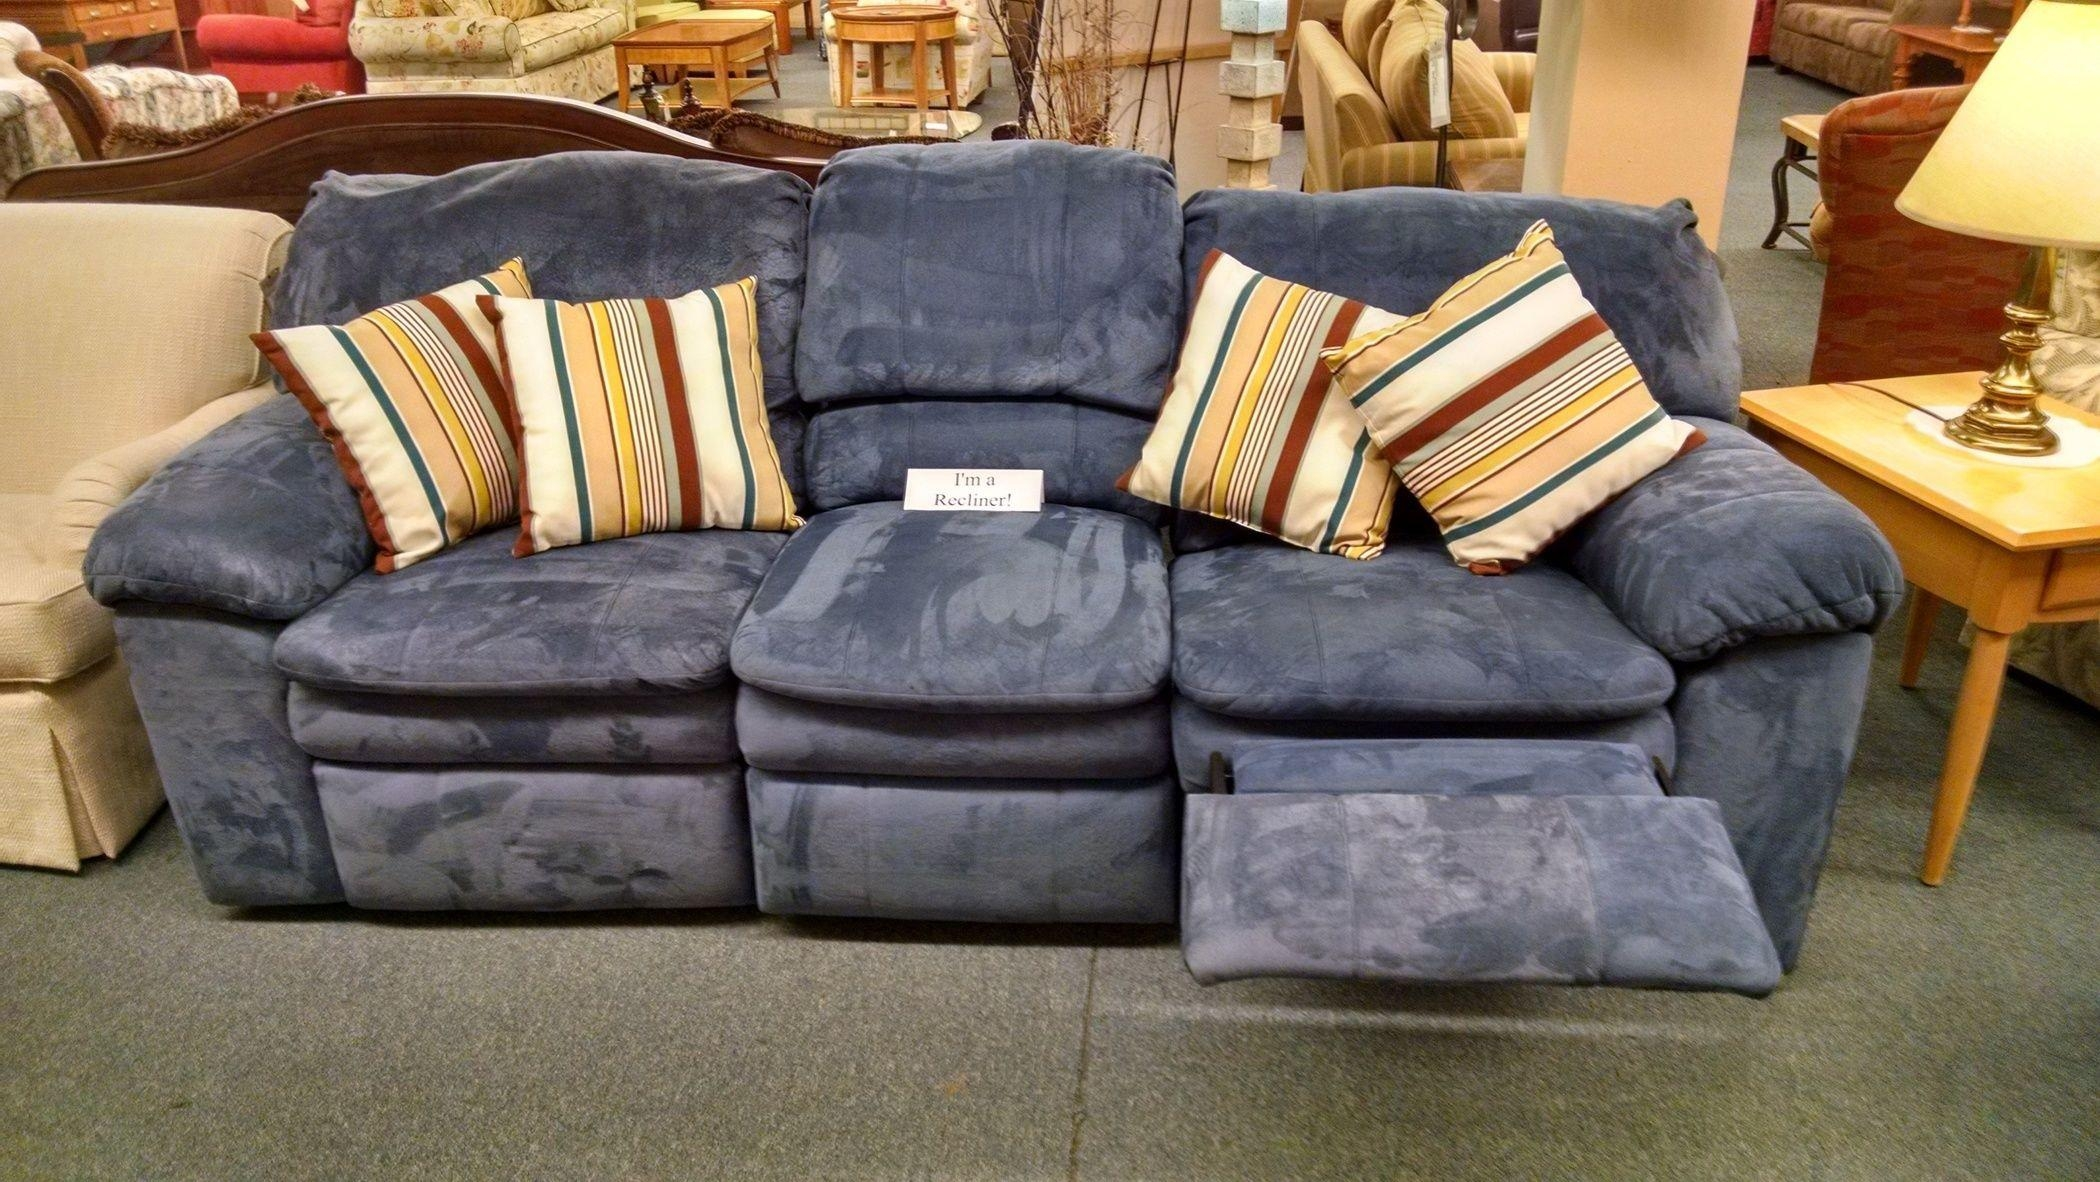 Berkline Blue Reclining Sofa | Delmarva Furniture Consignment Intended For Berkline Reclining Sofas (Image 1 of 20)